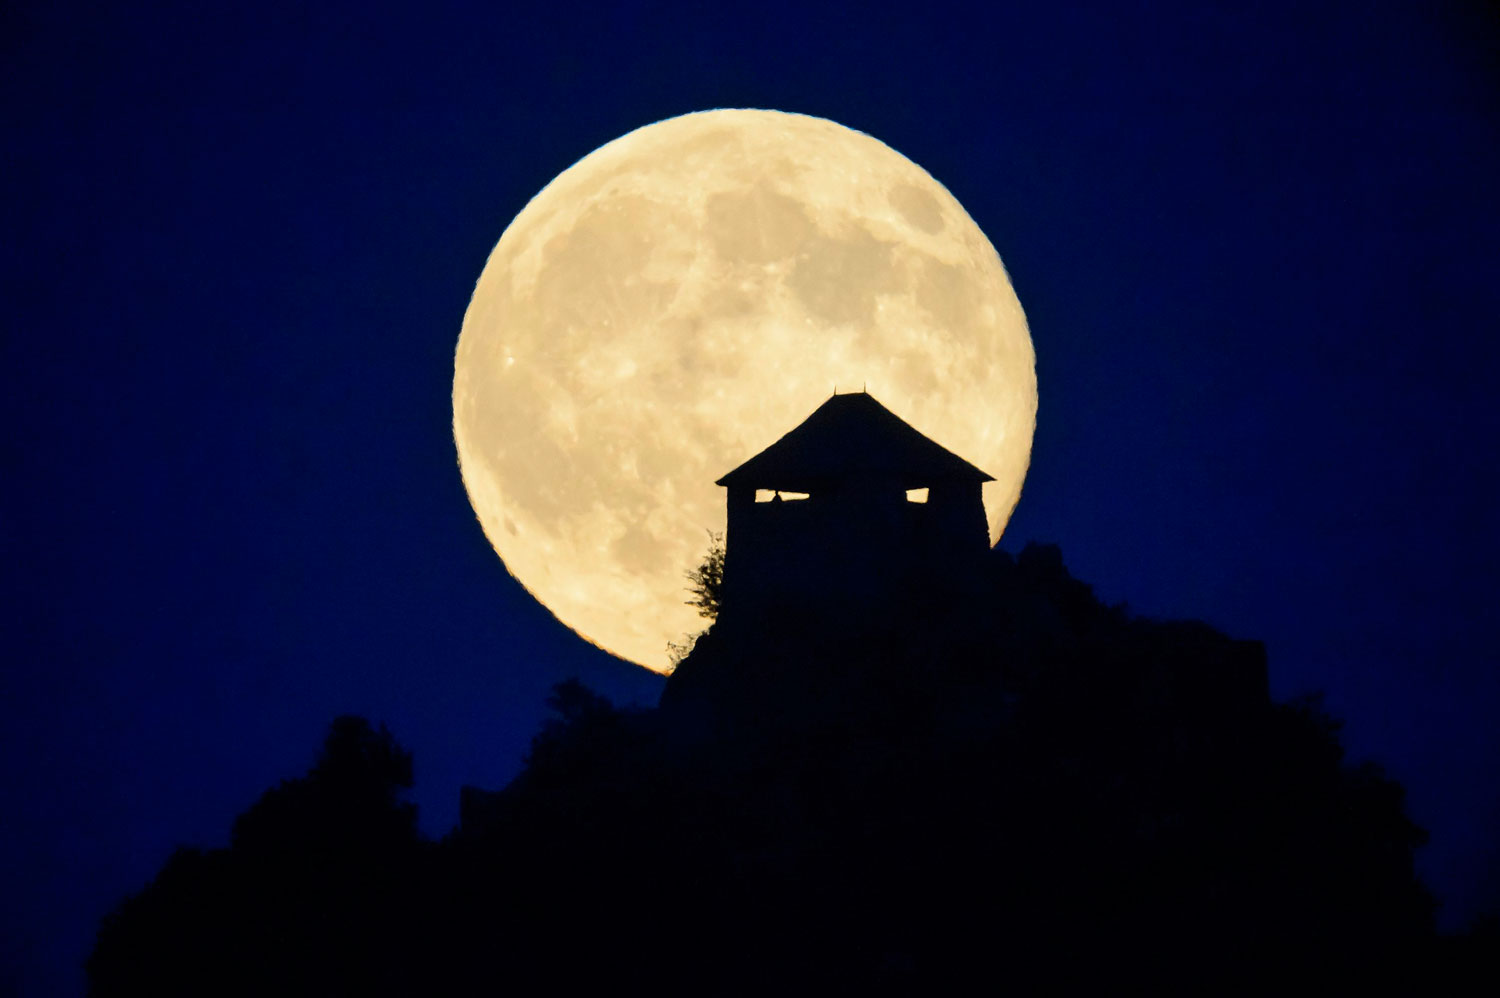 The full moon rises above the castle of Somoskoujfalu, 123 kms northeast of Budapest, Hungary, late Saturday, July 12, 2014.